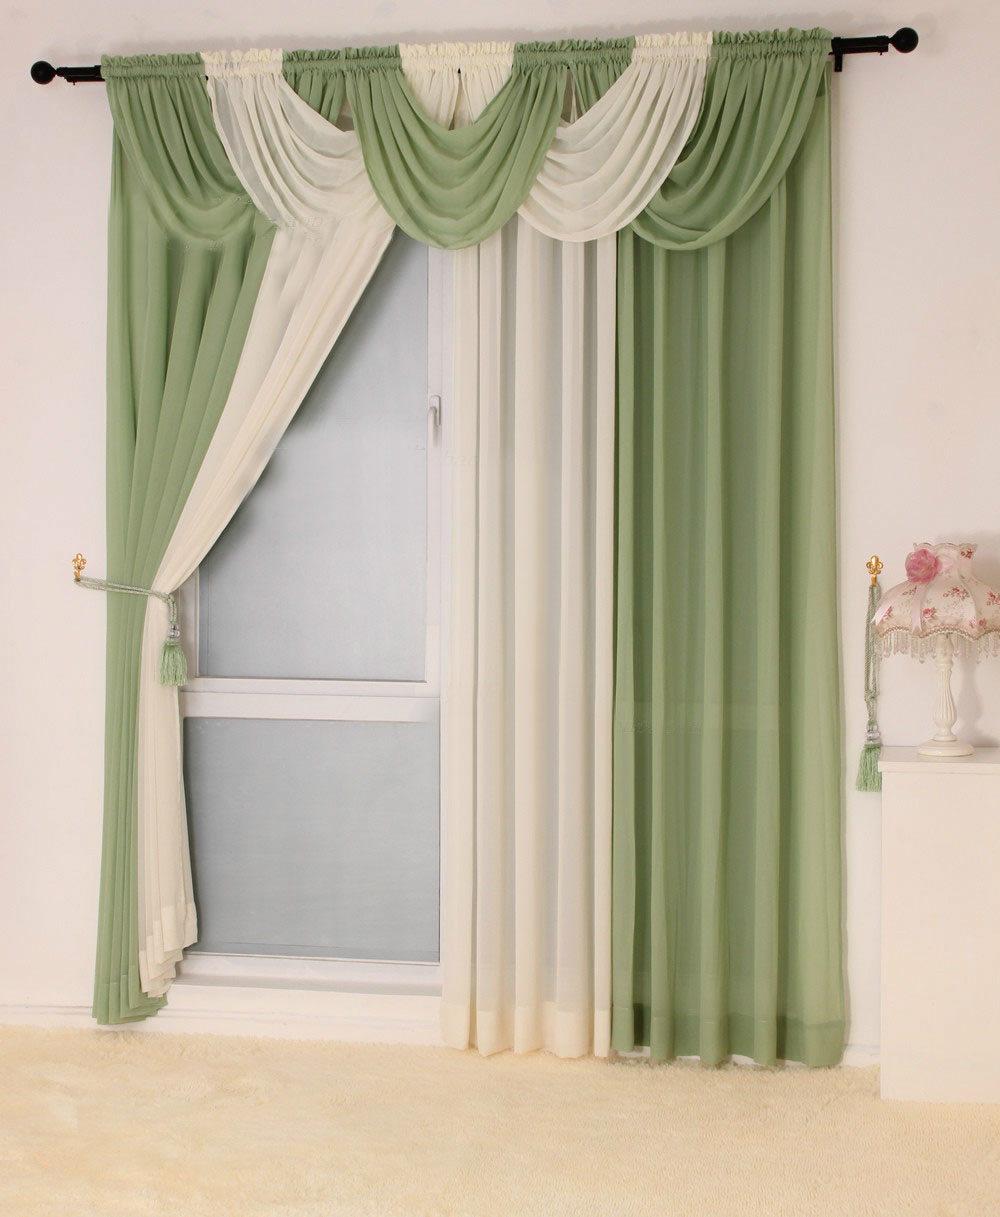 Us 10 2 Modern Curtains For Living Room Kitchen Valance Tulle Sheer Curtain Modern Curtains For Living Room Custom 100 Colors Available In Curtains